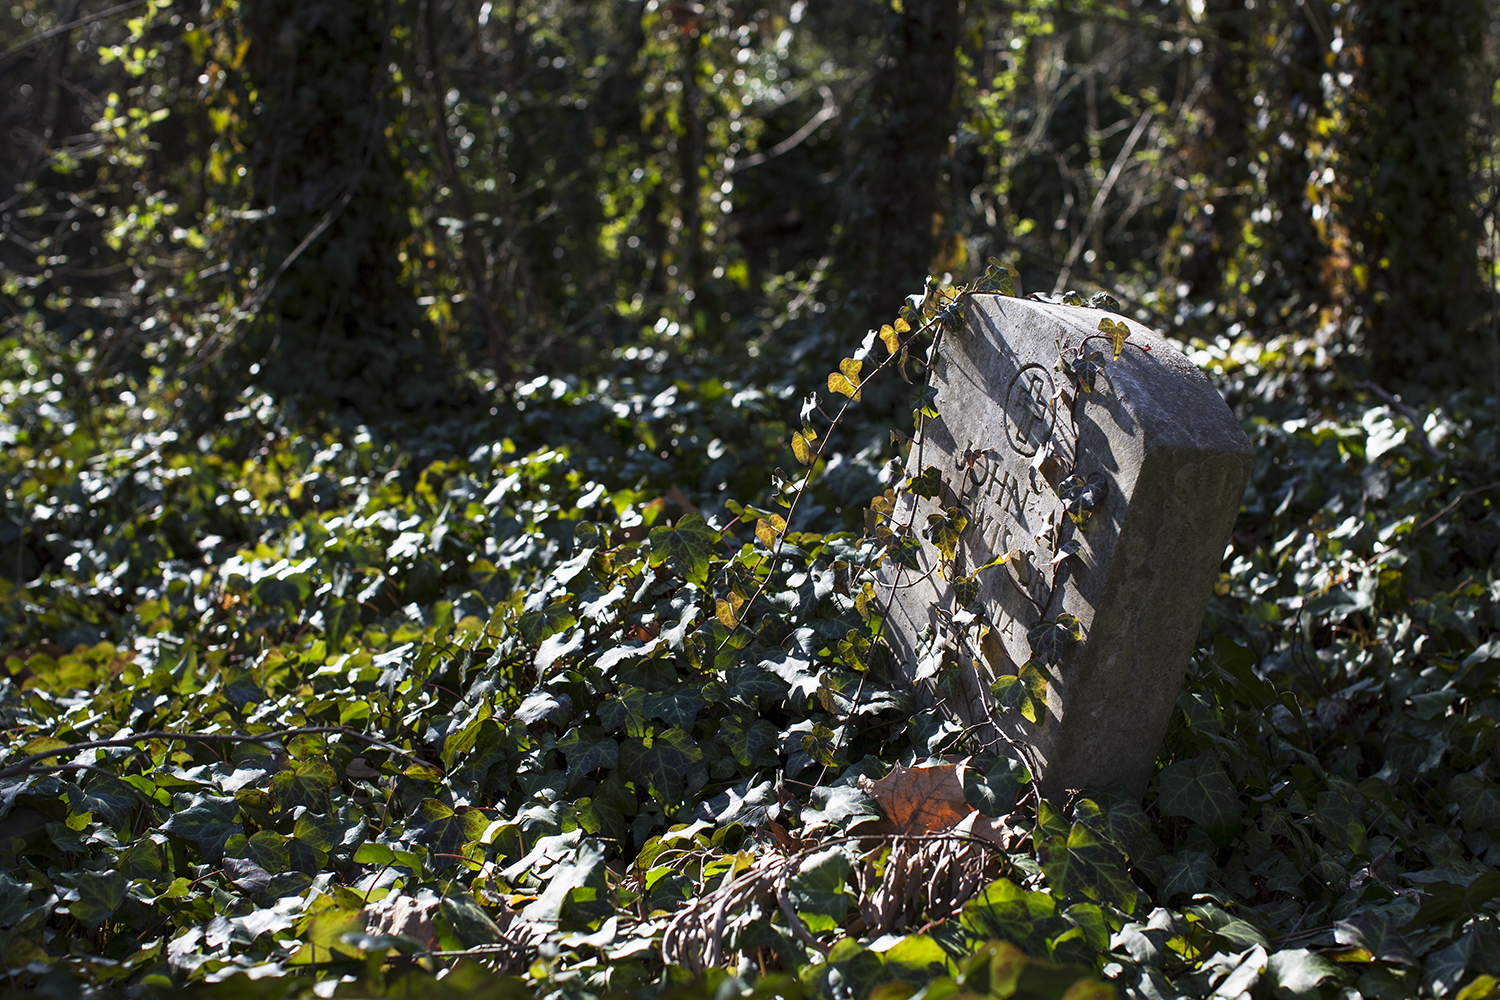 Web_20150119_East_End_Cemetery_work_day_Richmond_VA_5D_0254.jpg